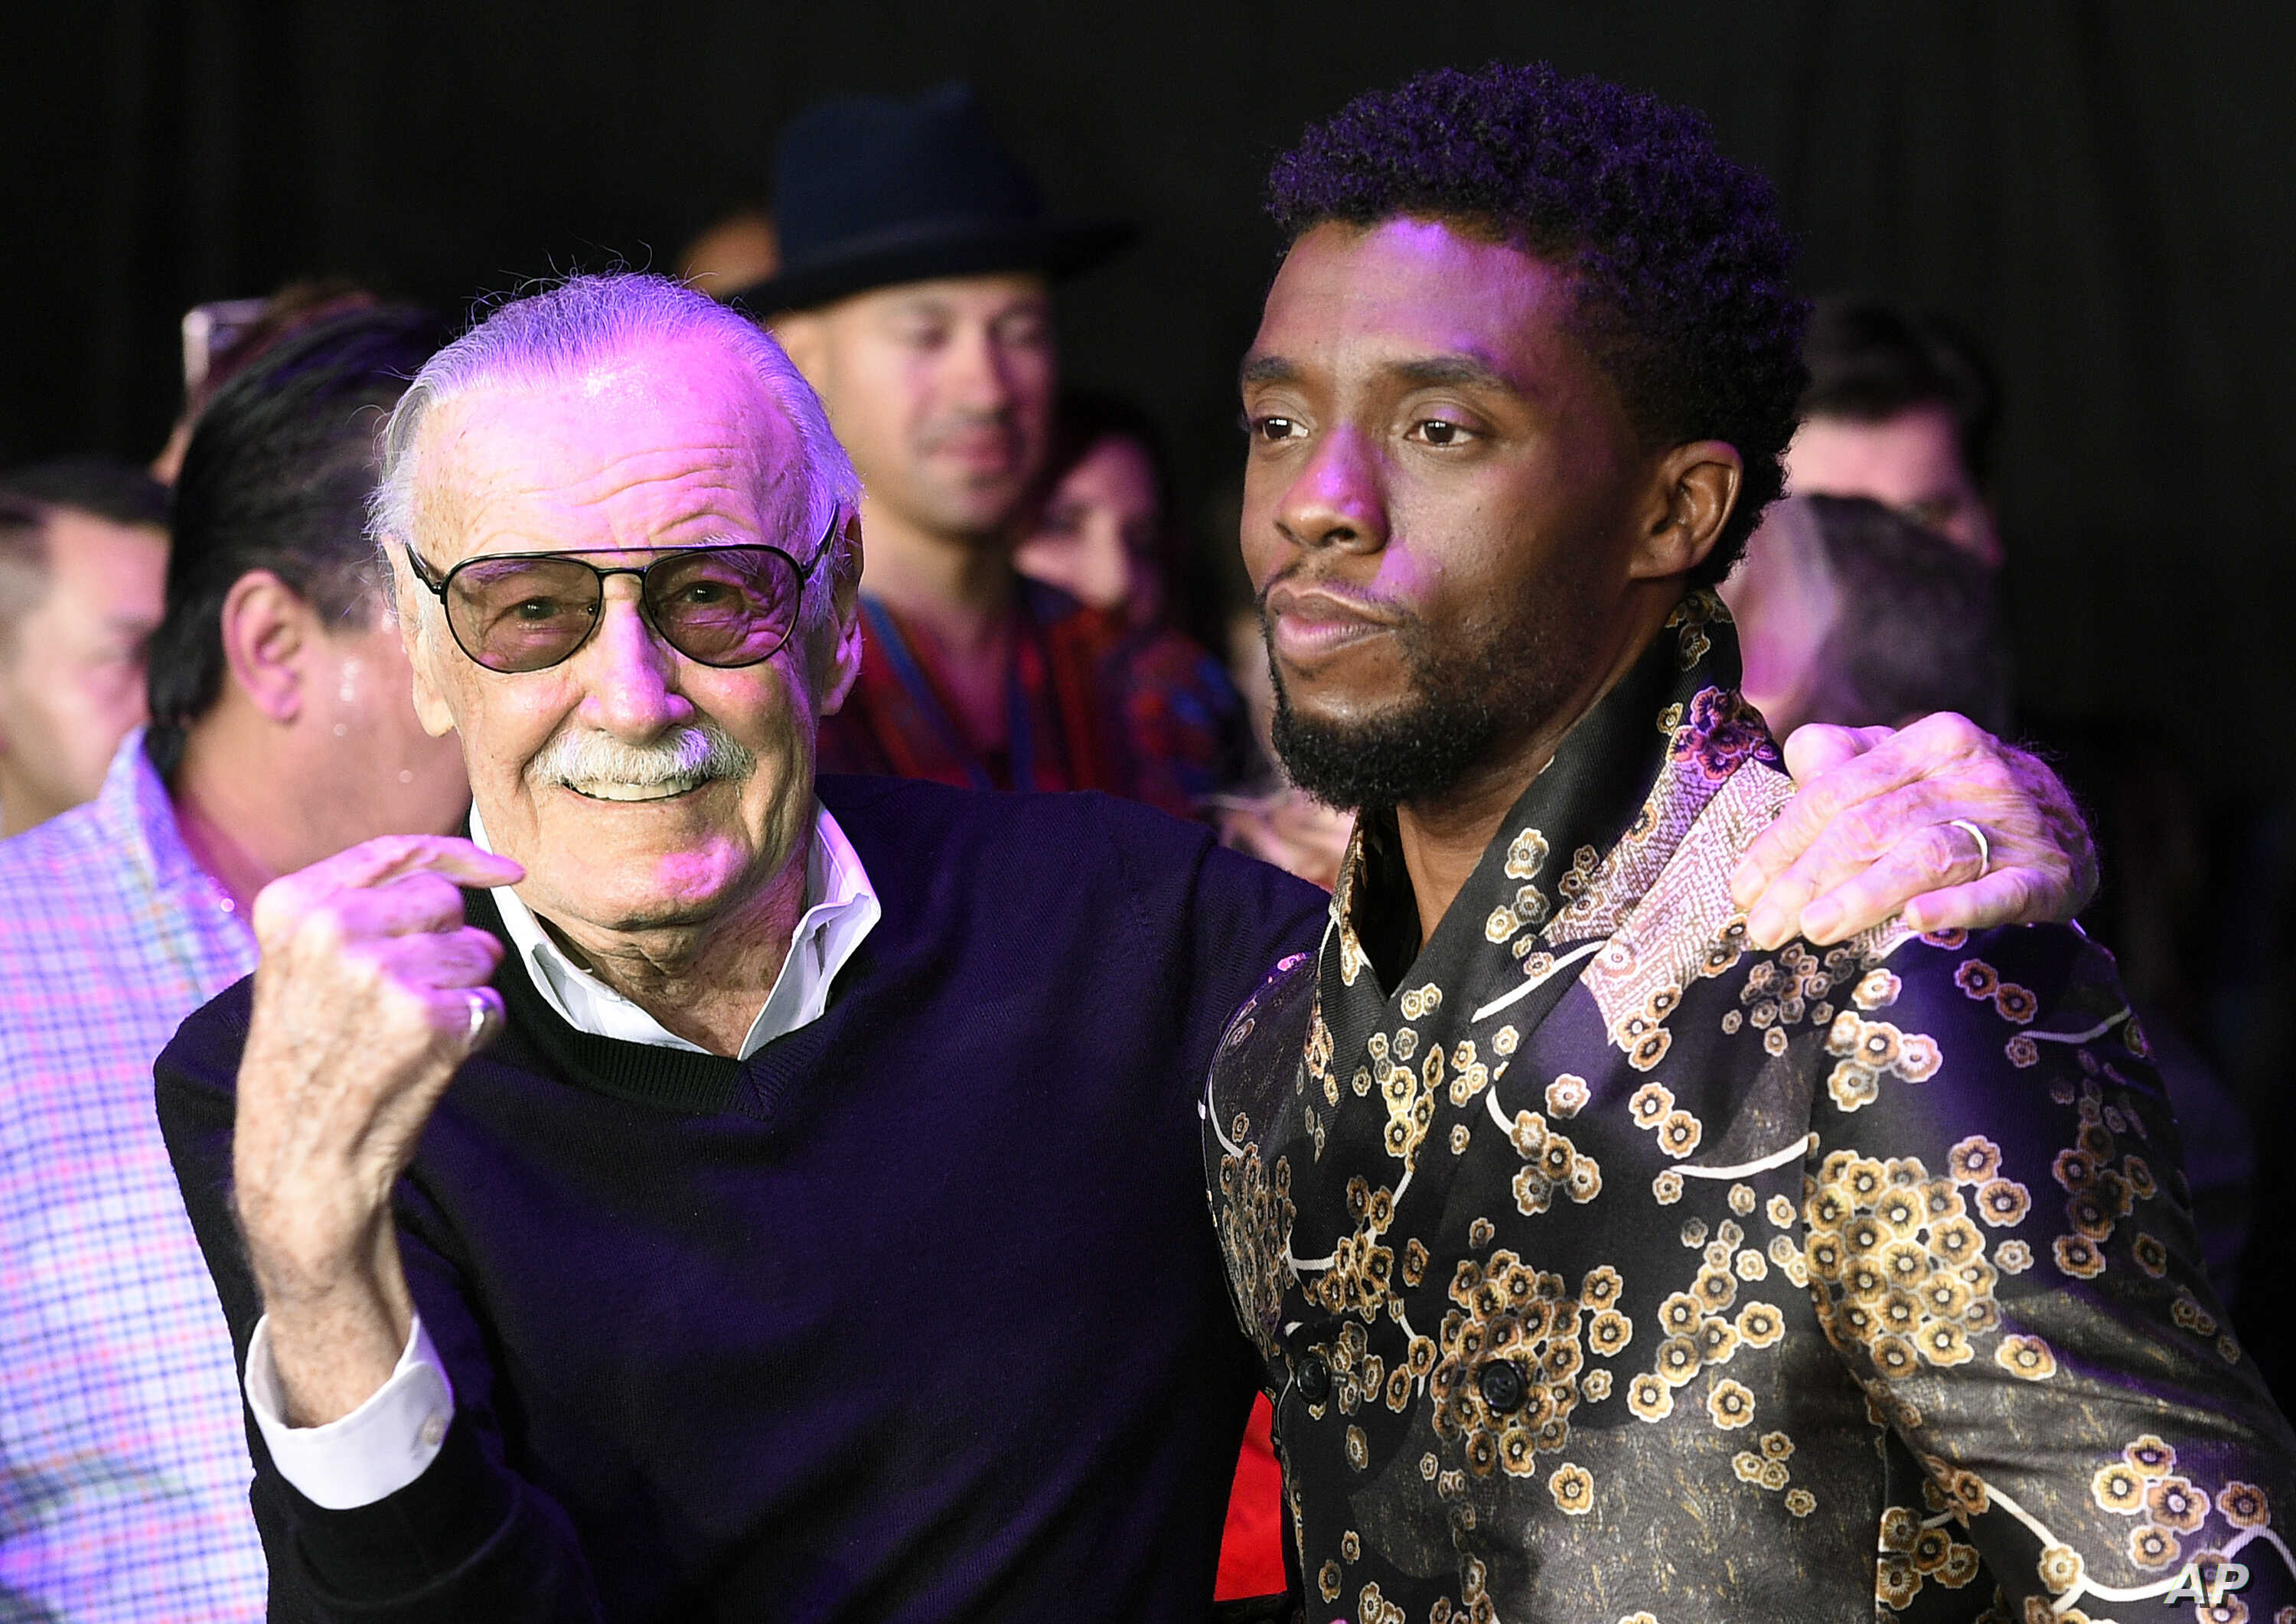 """FILE - Comic book legend Stan Lee (L), creator of the """"Black Panther"""" superhero, poses with Chadwick Boseman, star of the new """"Black Panther"""" film, at the premiere at The Dolby Theatre in Los Angeles, Jan. 29, 2018."""